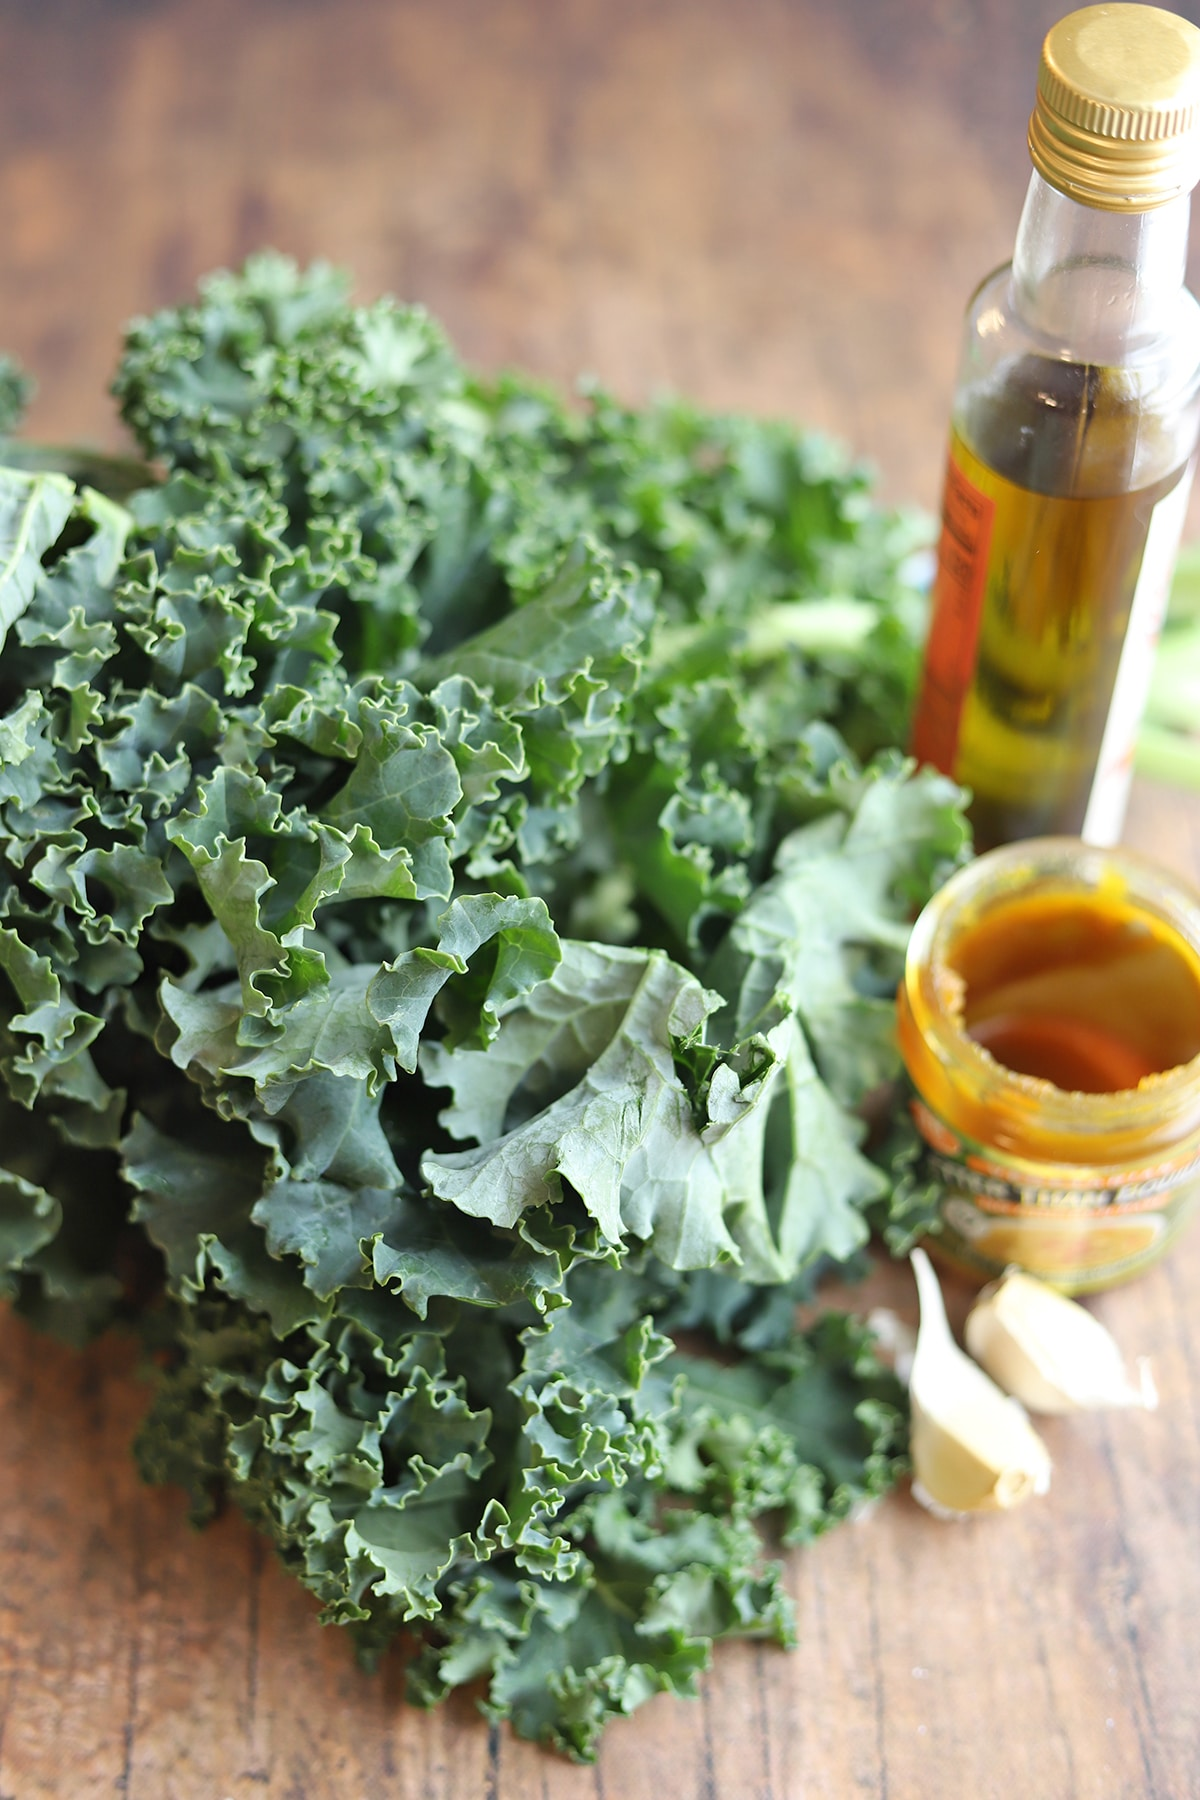 Curly kale on table with garlic cloves, olive oil, and Better Than Bouillon.